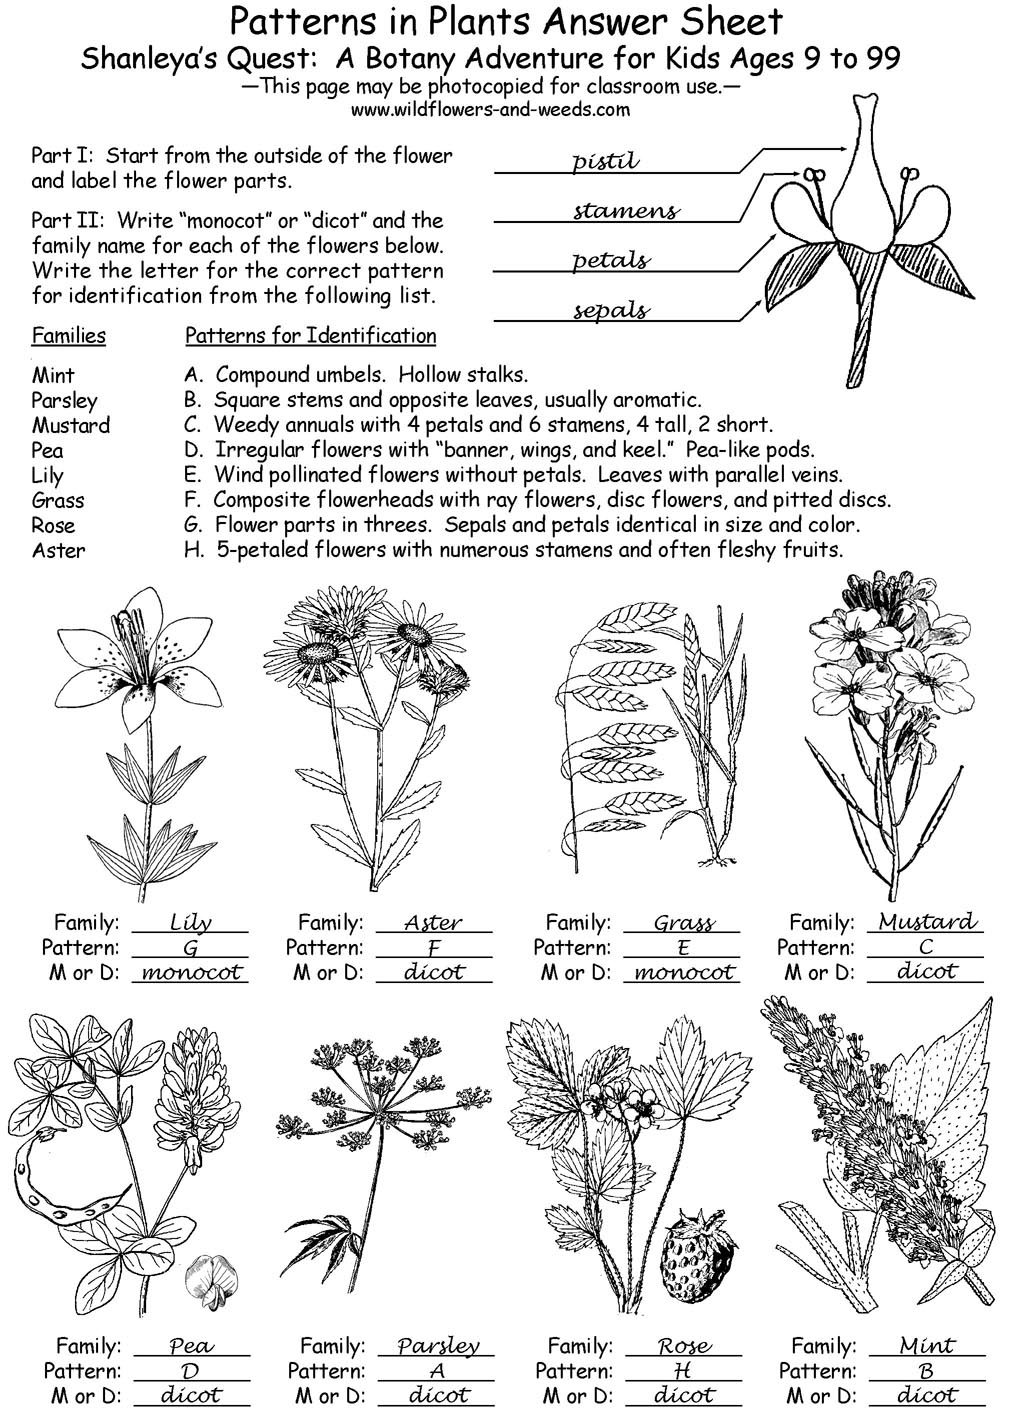 worksheet Plants Worksheet lesson plans science biology botany mini unit review the list of plants and rules wildcrafting for grading students can turn in patterns a worksheet for